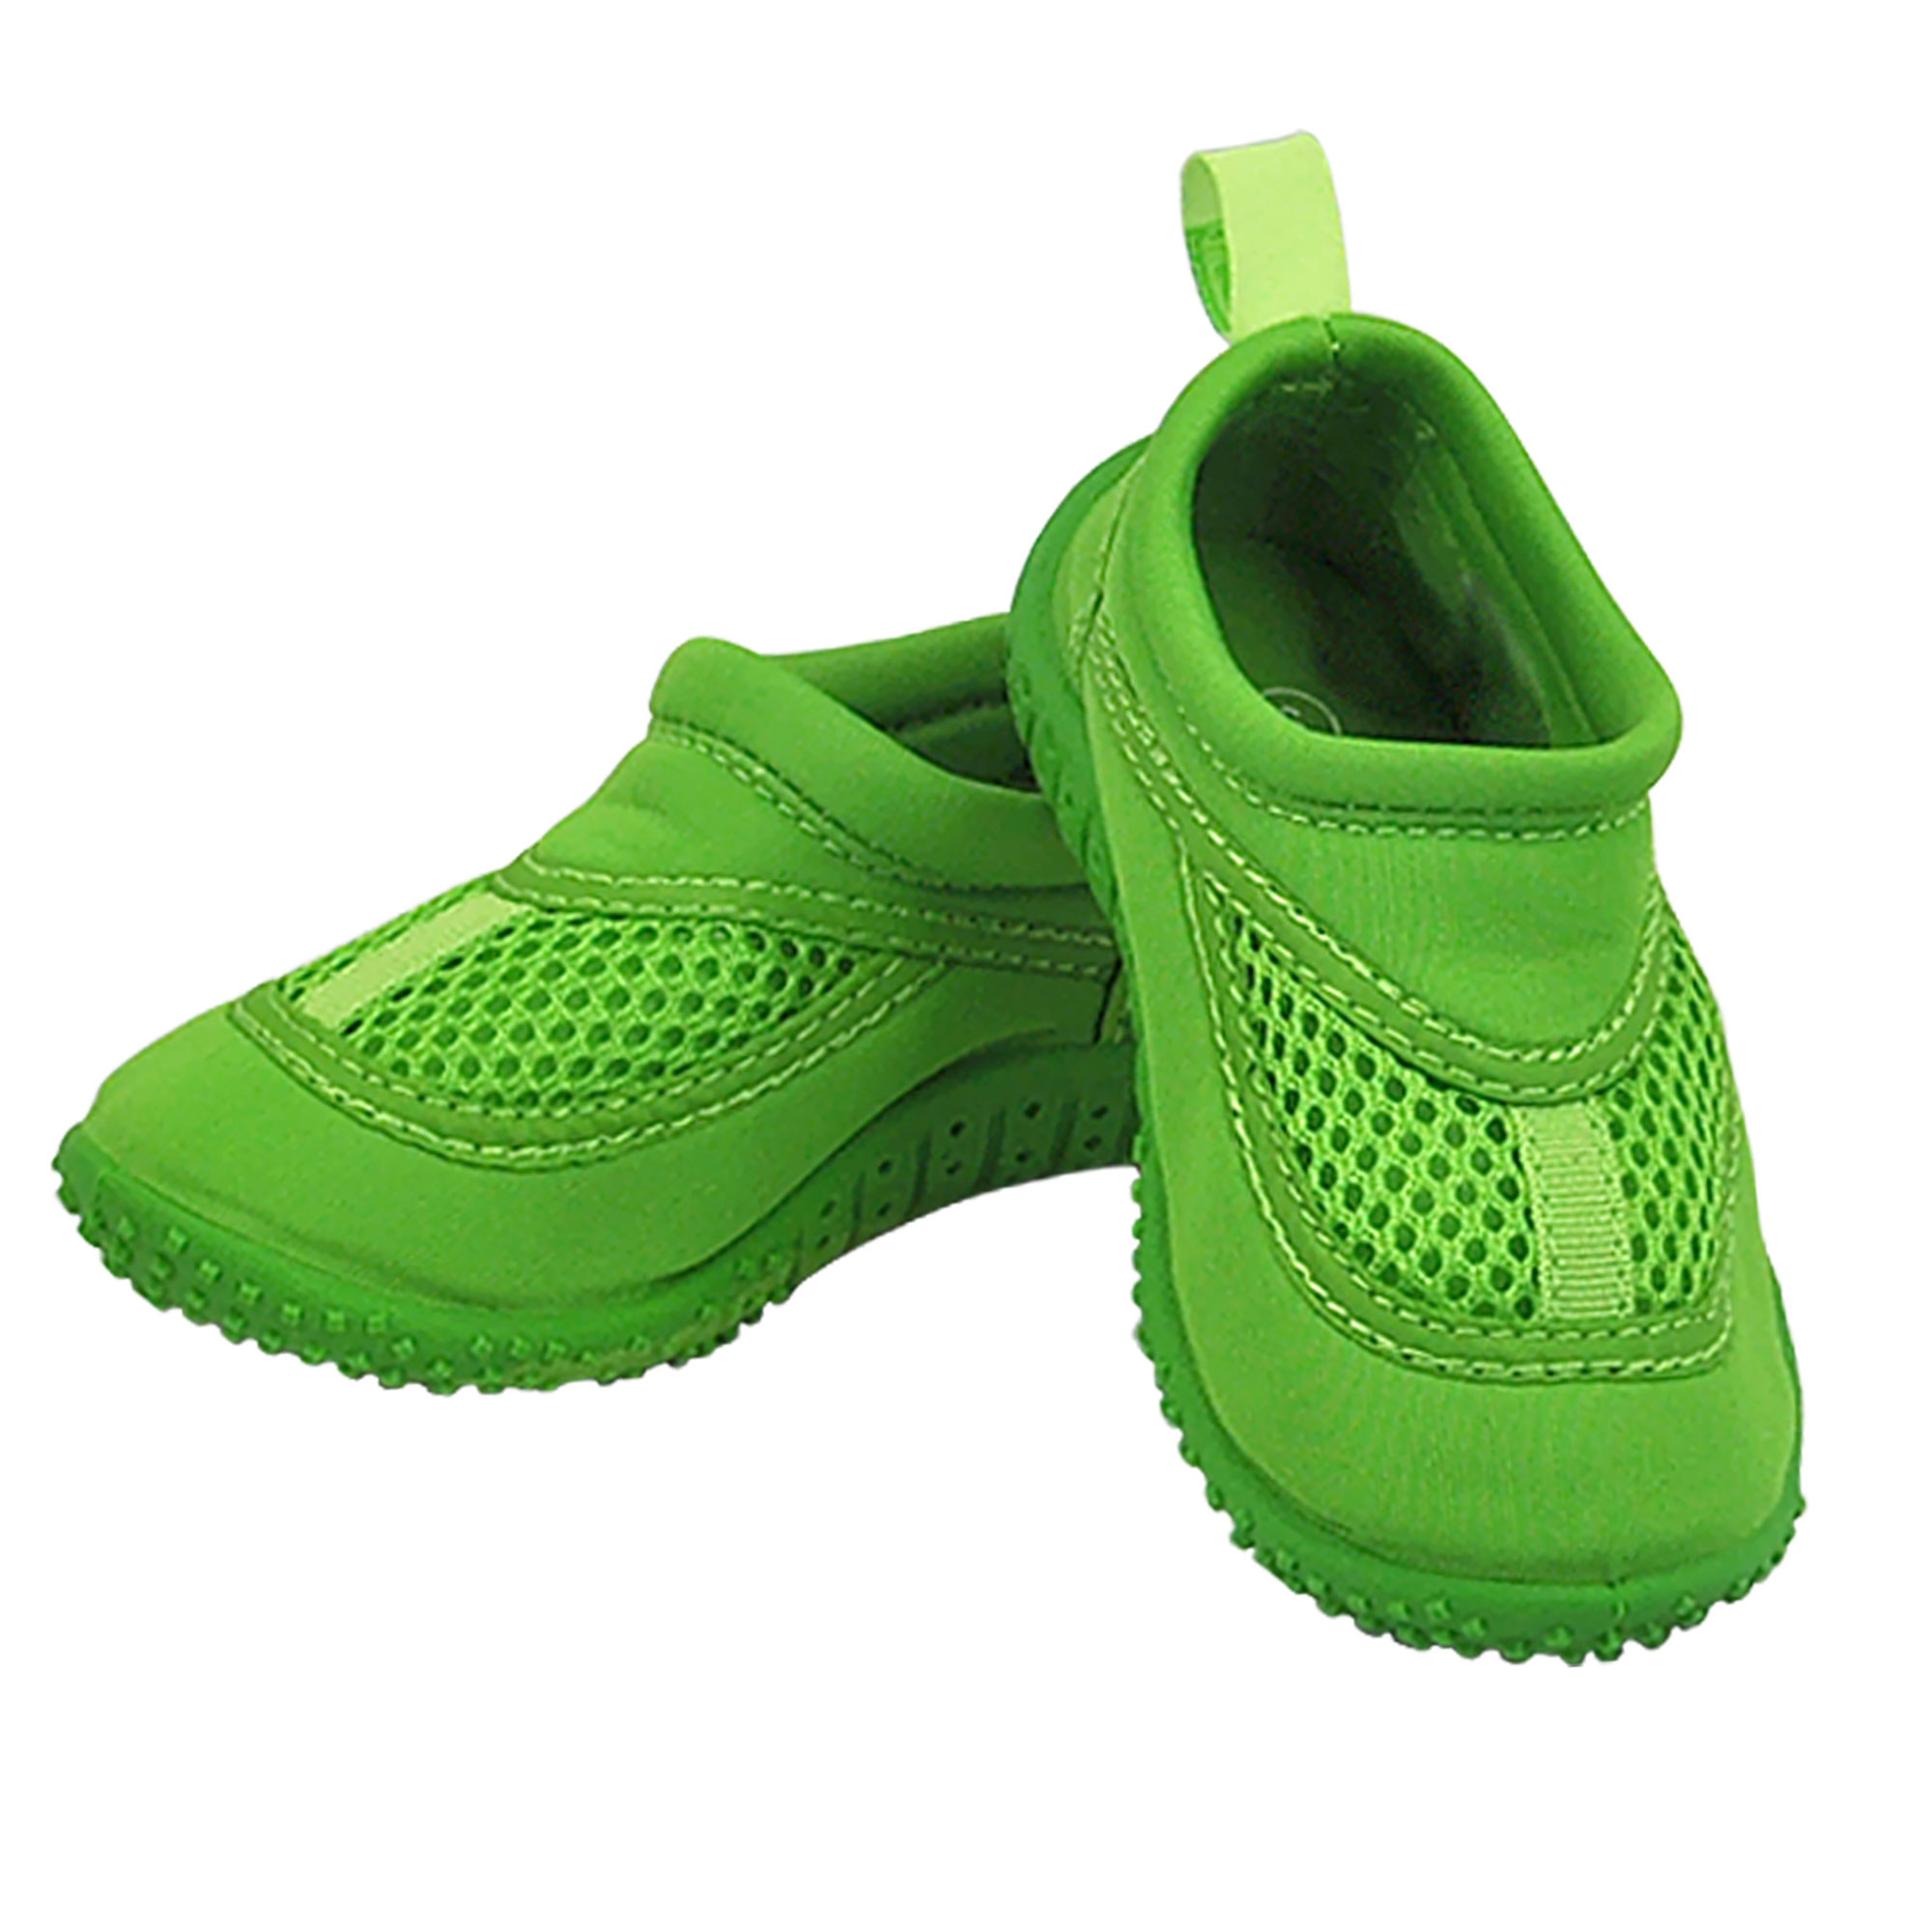 Iplay Unisex Boys or Girls Sand and Water Swim Shoes Kids Aqua Socks for Babies, Infants, Toddlers, and Children Lime Green Size 6 / Zapatos De Agua